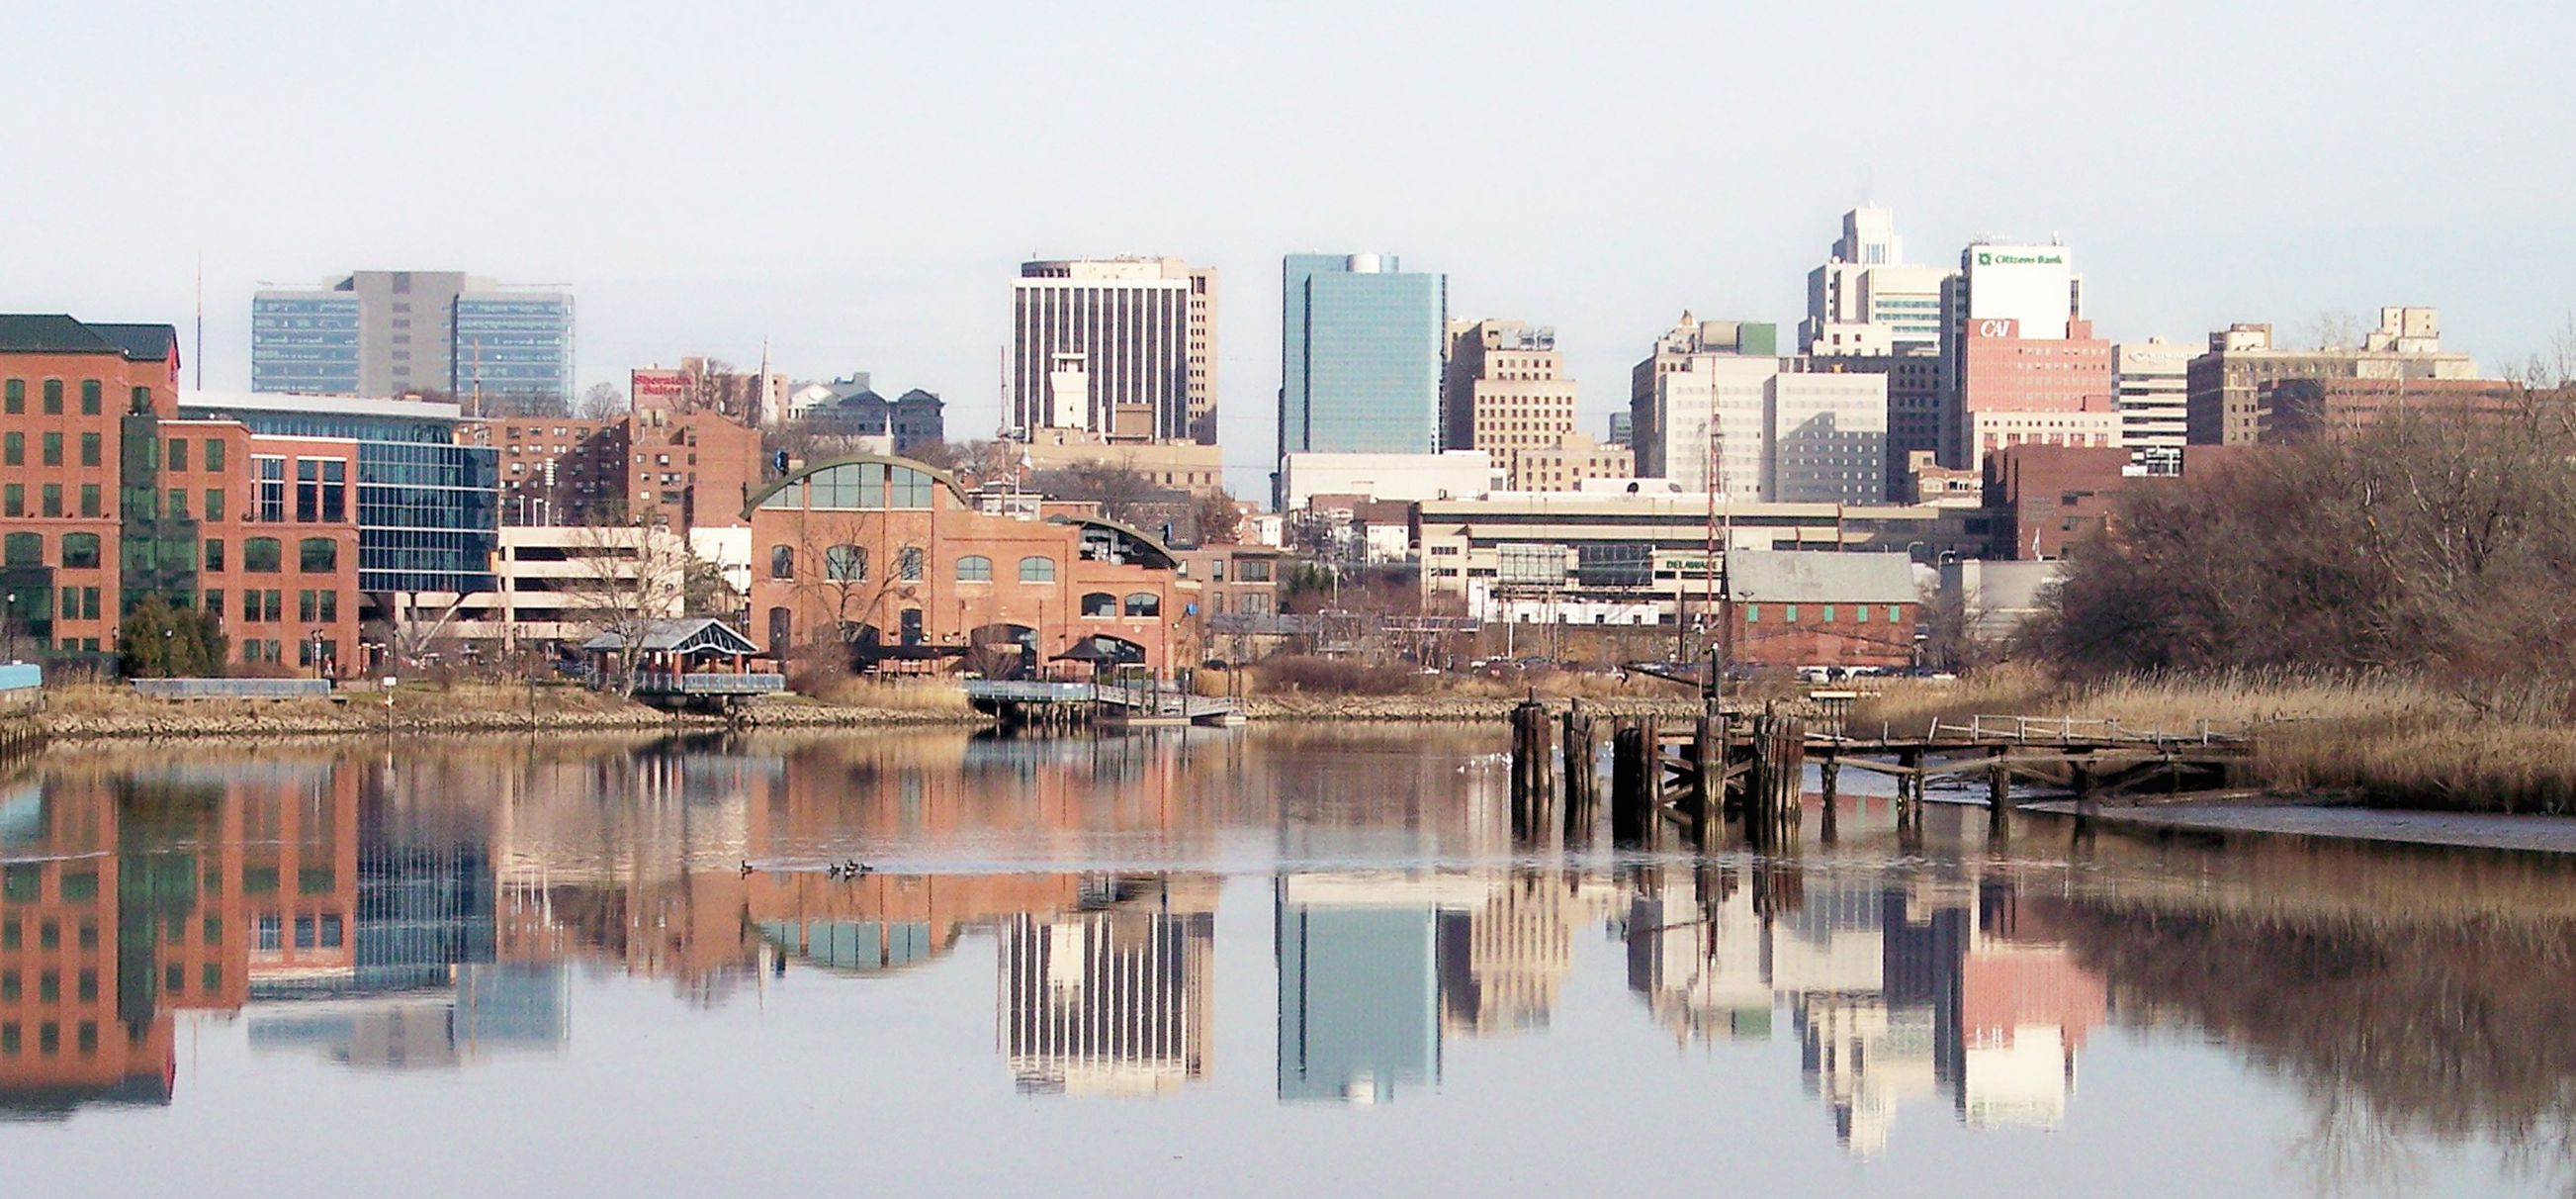 http://commons.wikipedia.org/wiki/File:Wilmington_Delaware_skyline.jpg